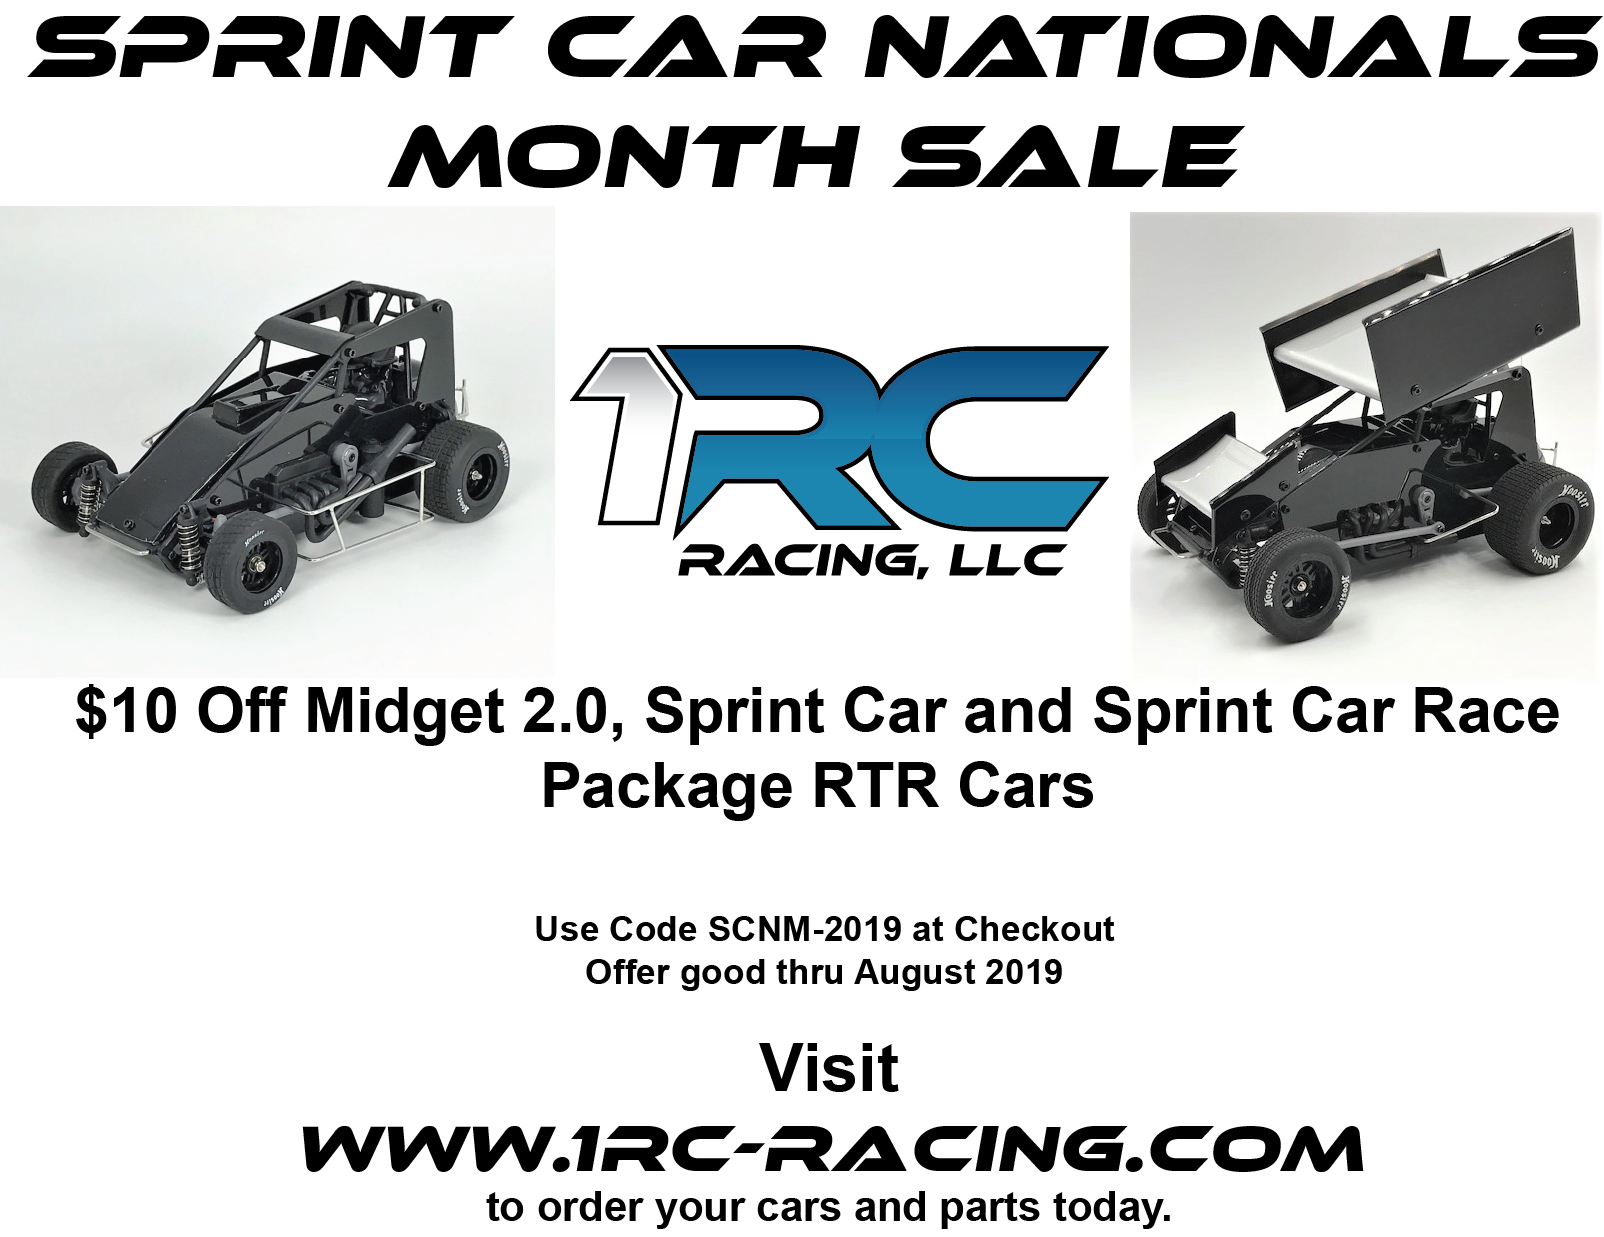 1rc-racing-sprint-car-nationals-month-2019-10-off-per-car.png